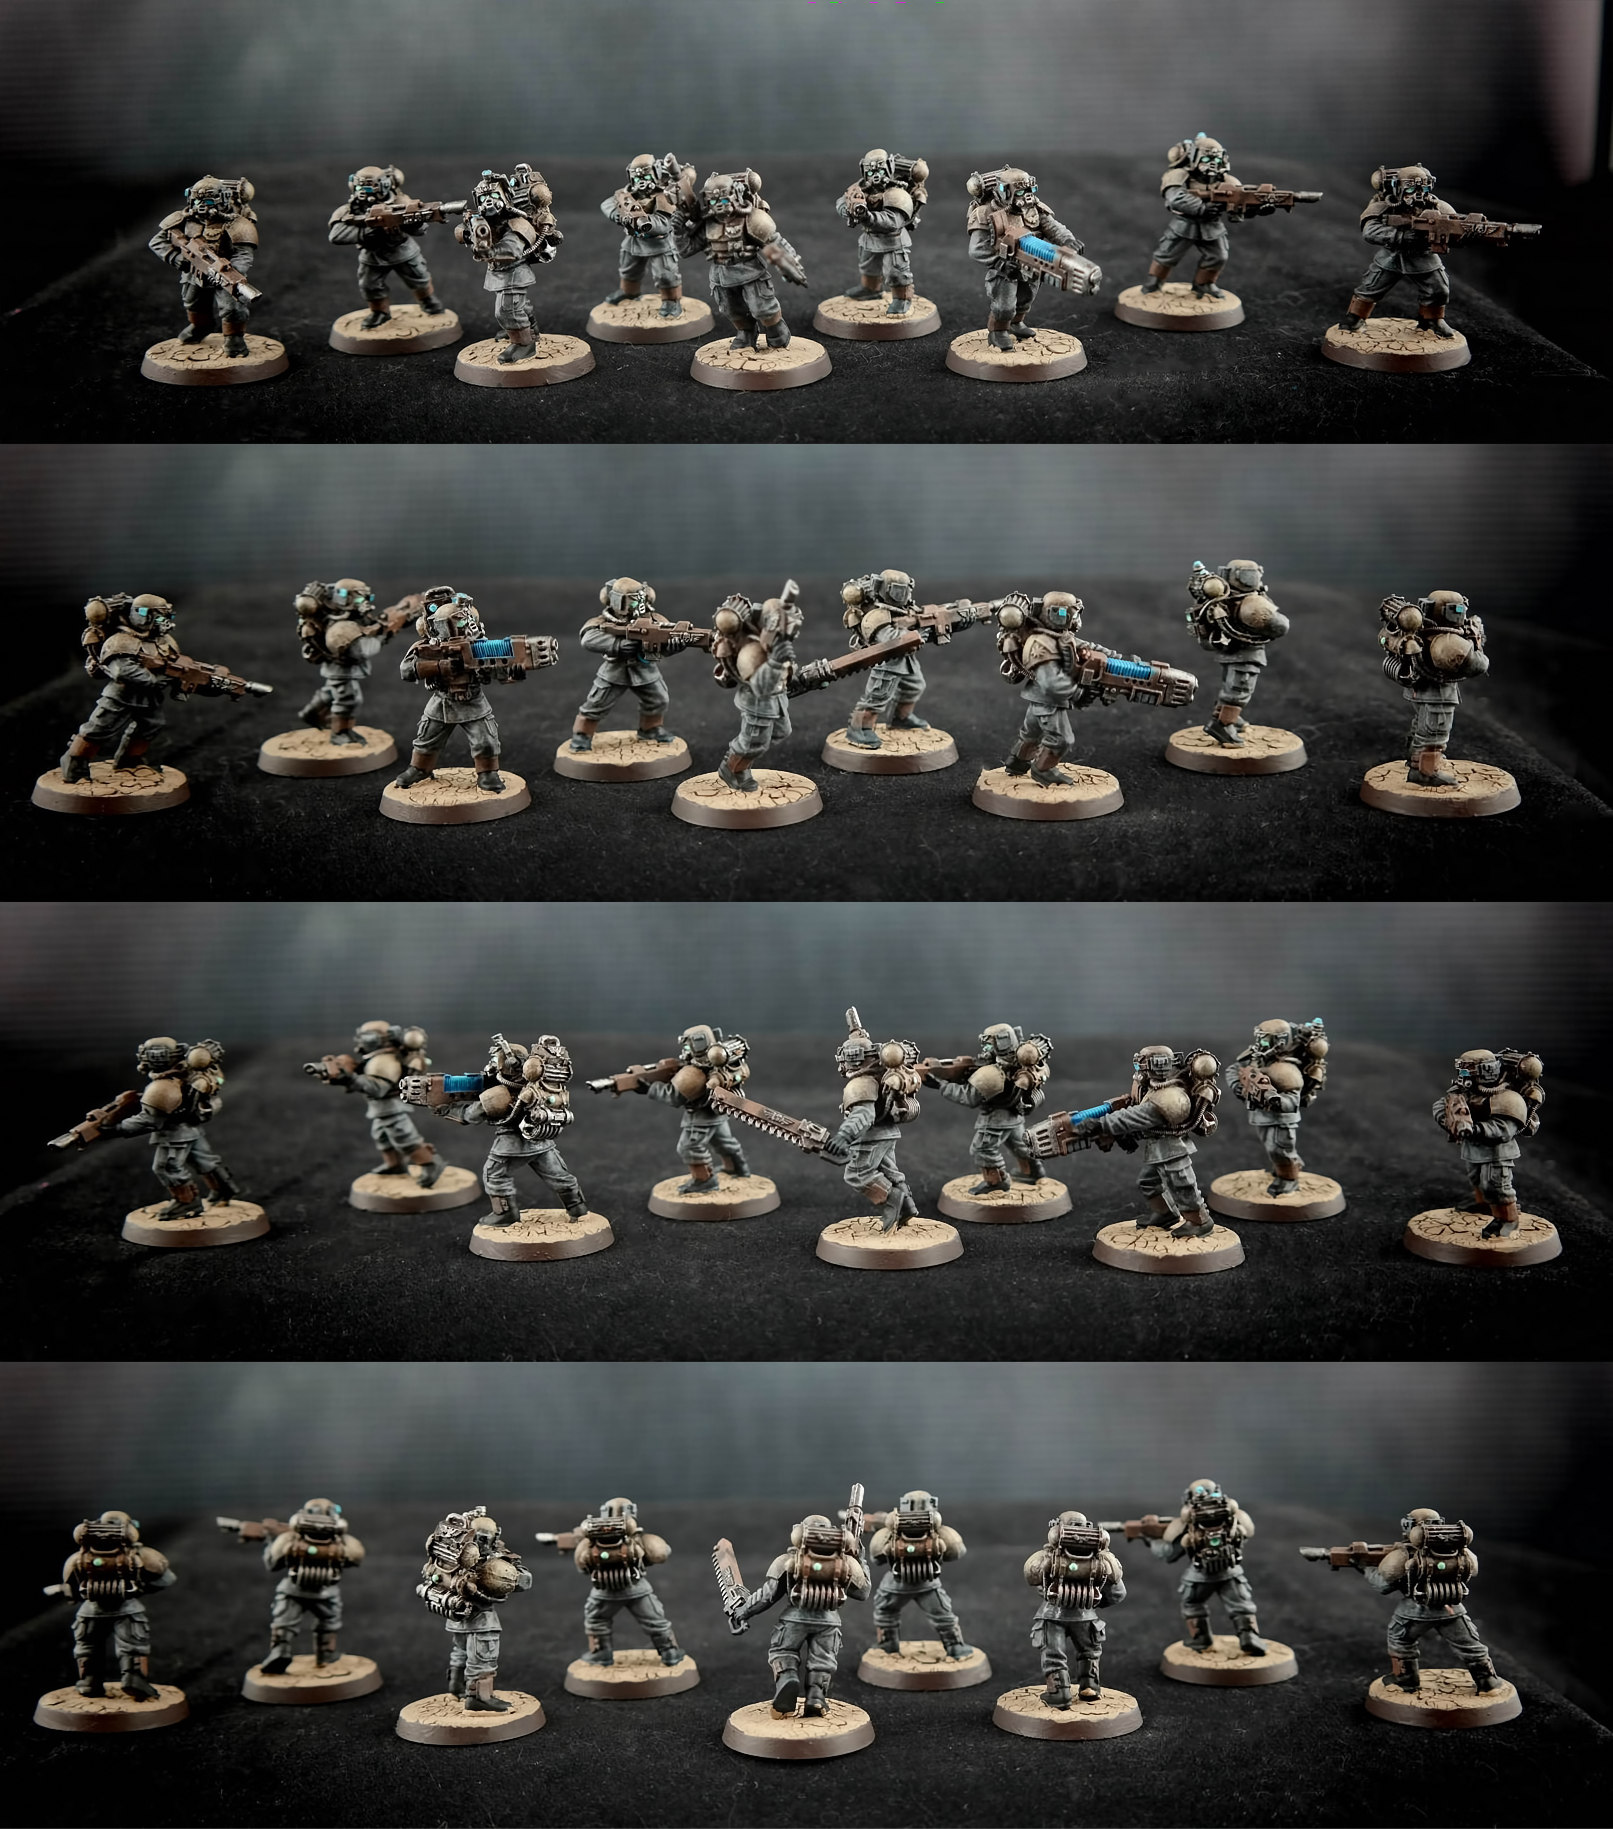 Air Cavalry, Astra Militarum, Cadians, Elysians, Forge World, Hostile Environment, Imperial Guard, Imperial Navy, Militarum Tempestus, Scions, Veteran